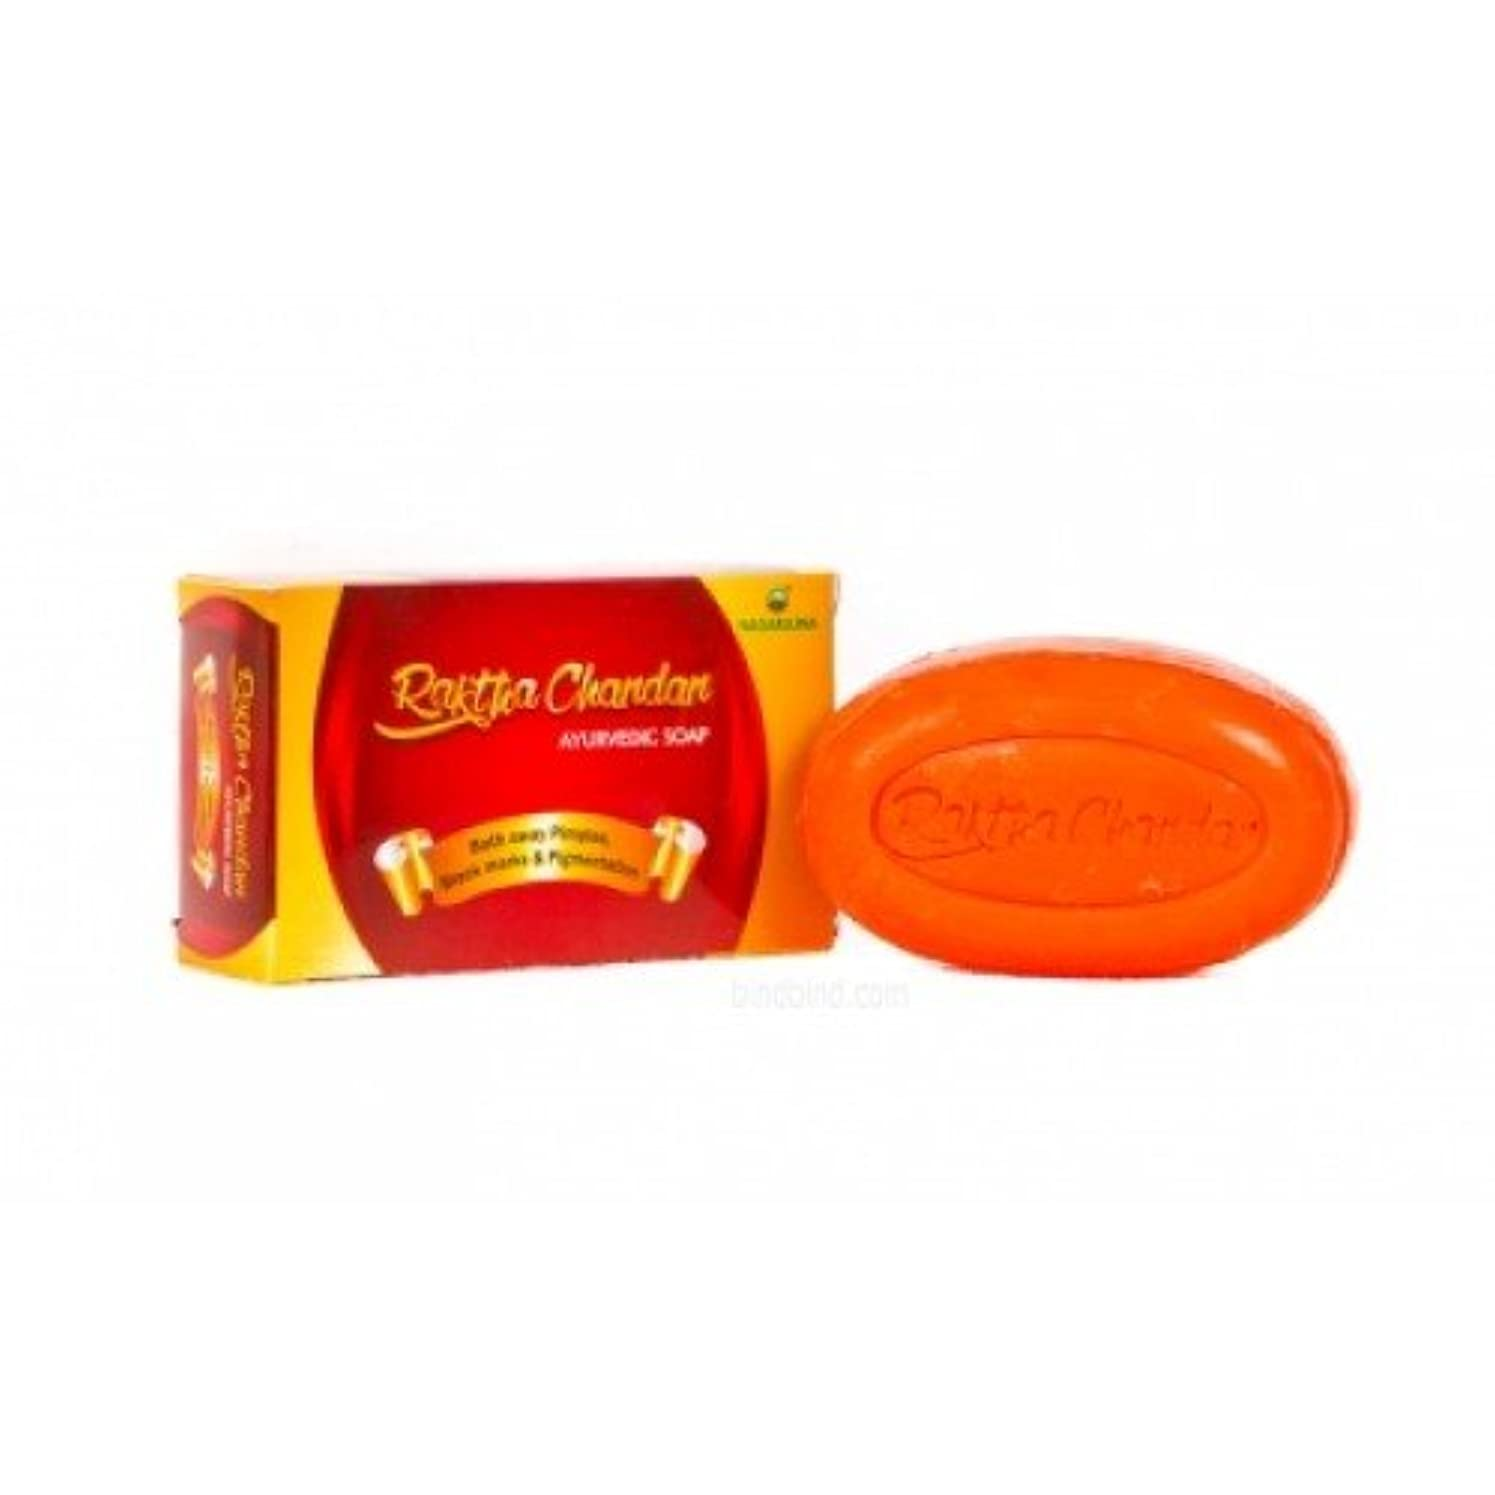 取り囲むひどいパスポートNagarjuna Raktha Chandan Ayurvedic Soap Best For Glowing Skin